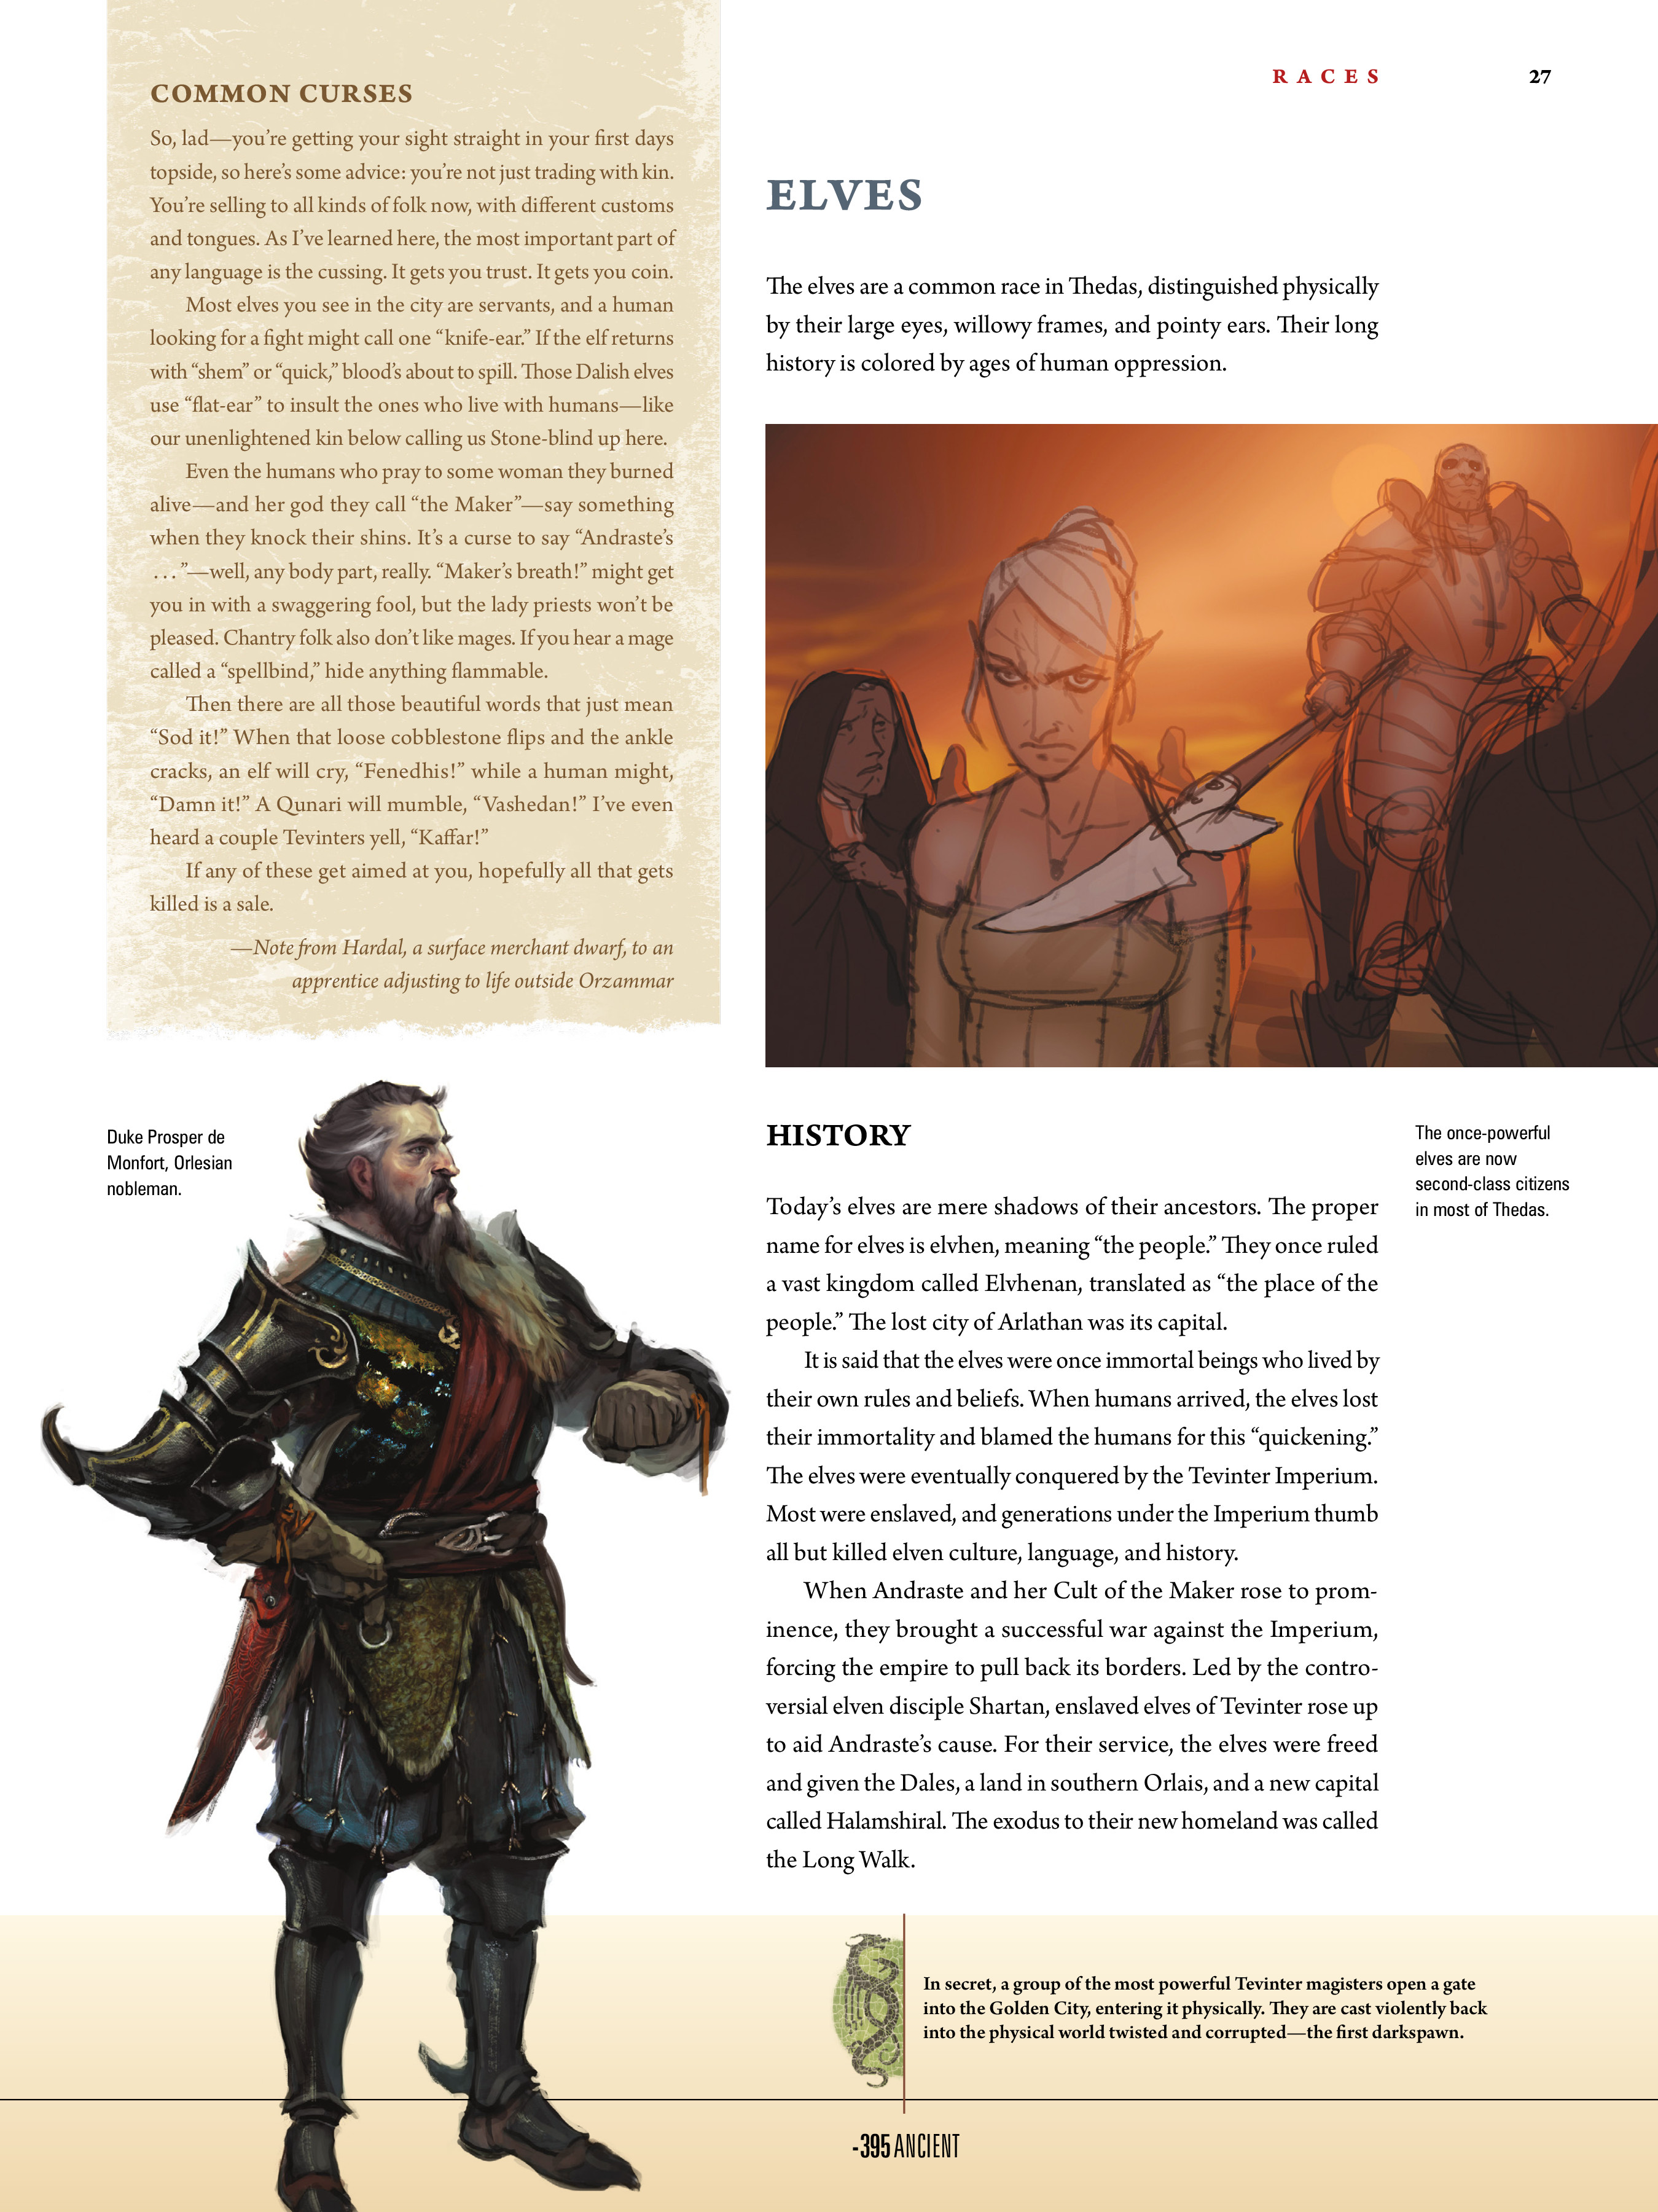 Read online Dragon Age: The World of Thedas comic -  Issue # TPB 1 - 22